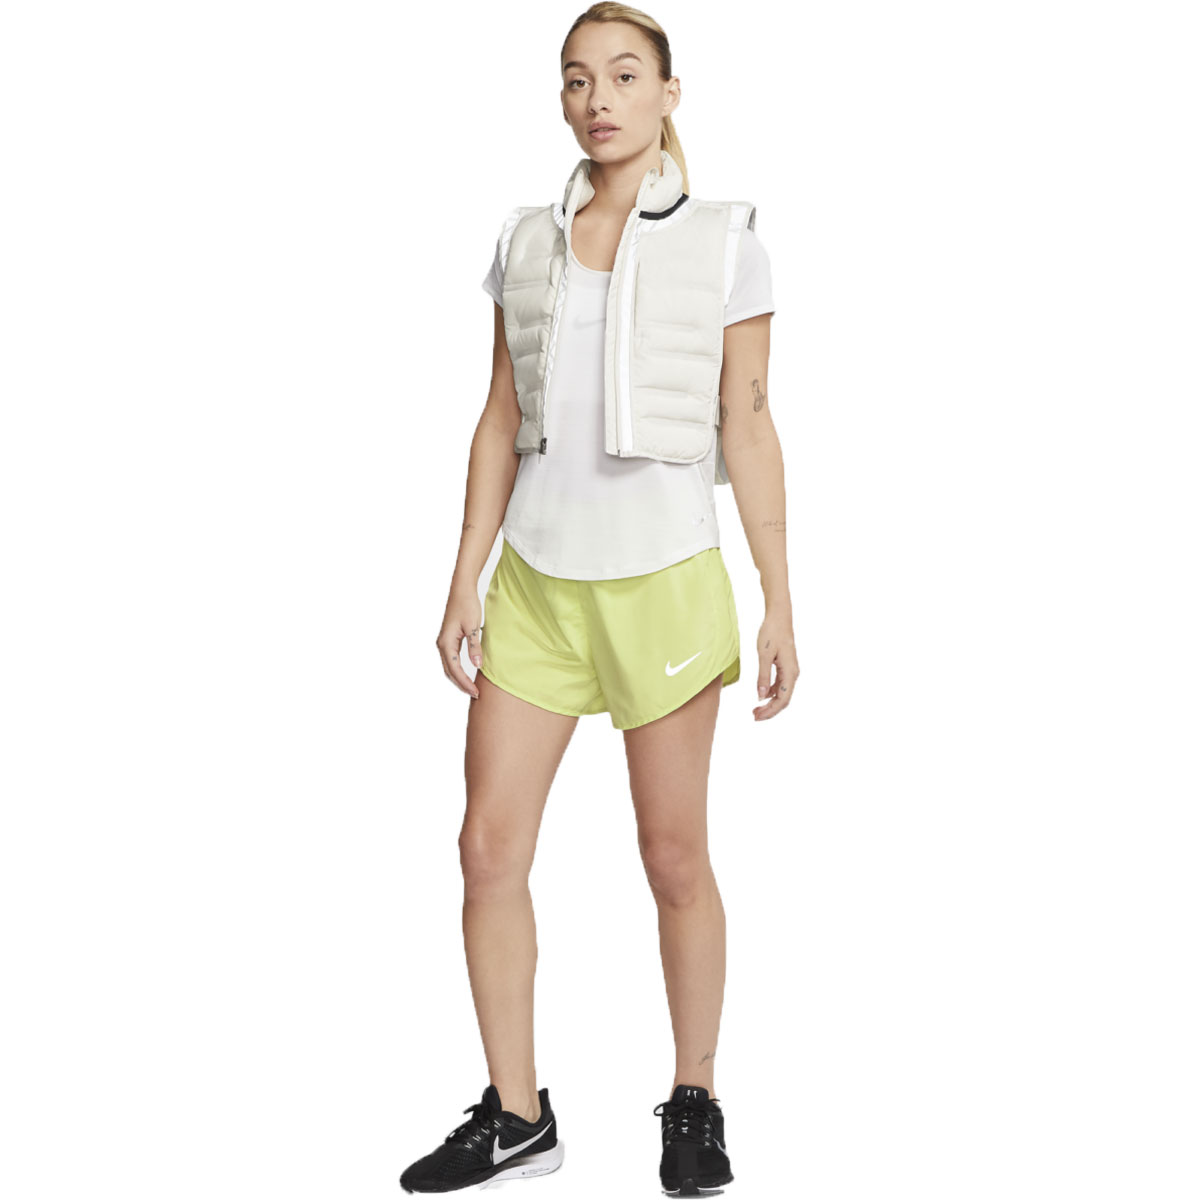 Women's Nike Tempo Luxe 3 Inch Short  - Color: Limelight - Size: S, Limelight, large, image 3